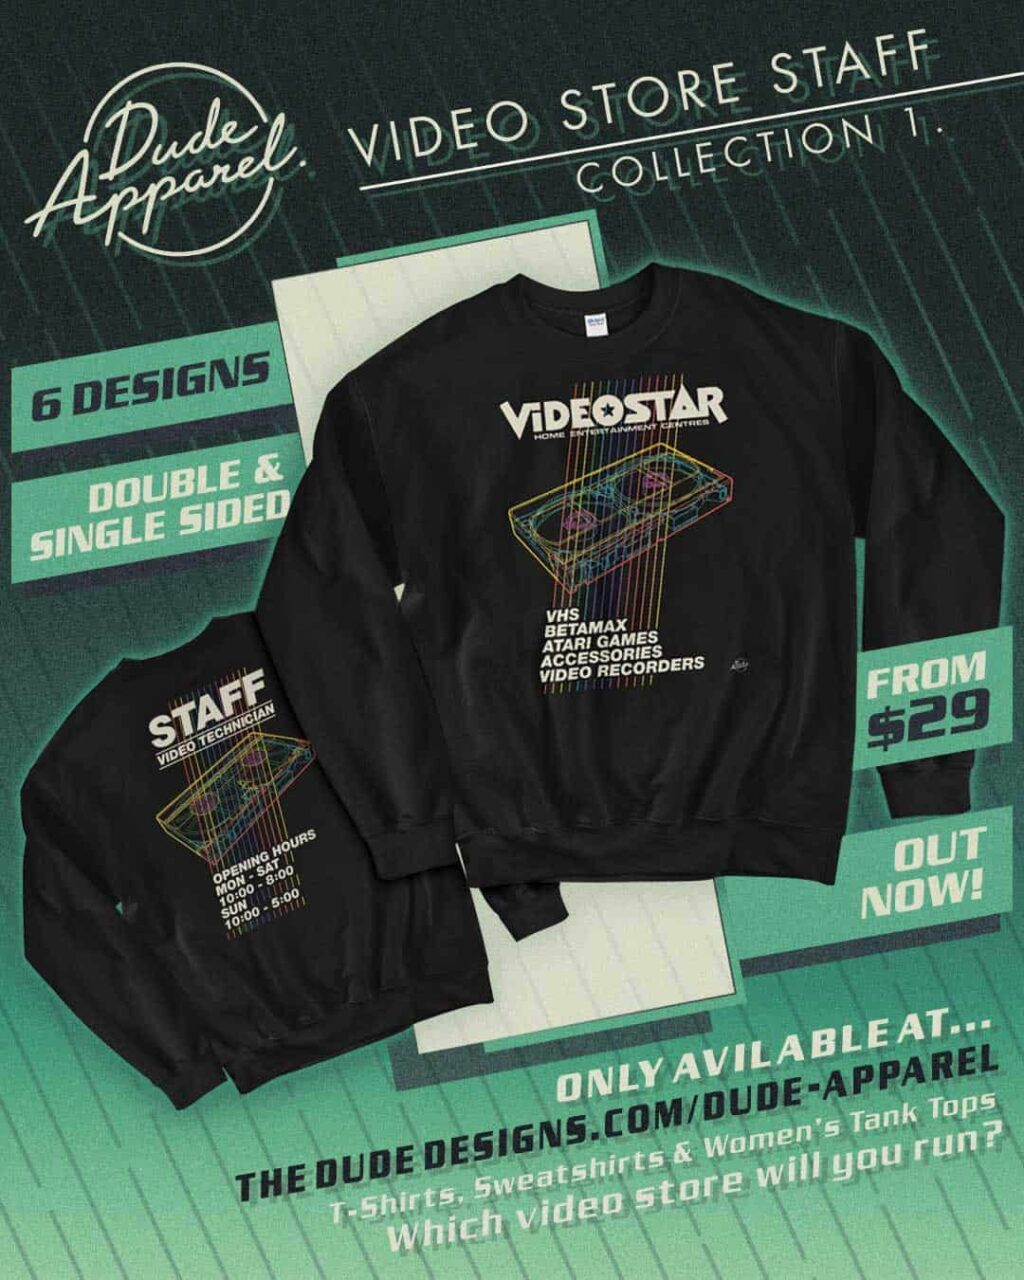 Dude Apparel VHS Video store 2 1024x1280 - DUDE APPAREL Launches the Perfect Retro Gear for Nostalgic Film Fans